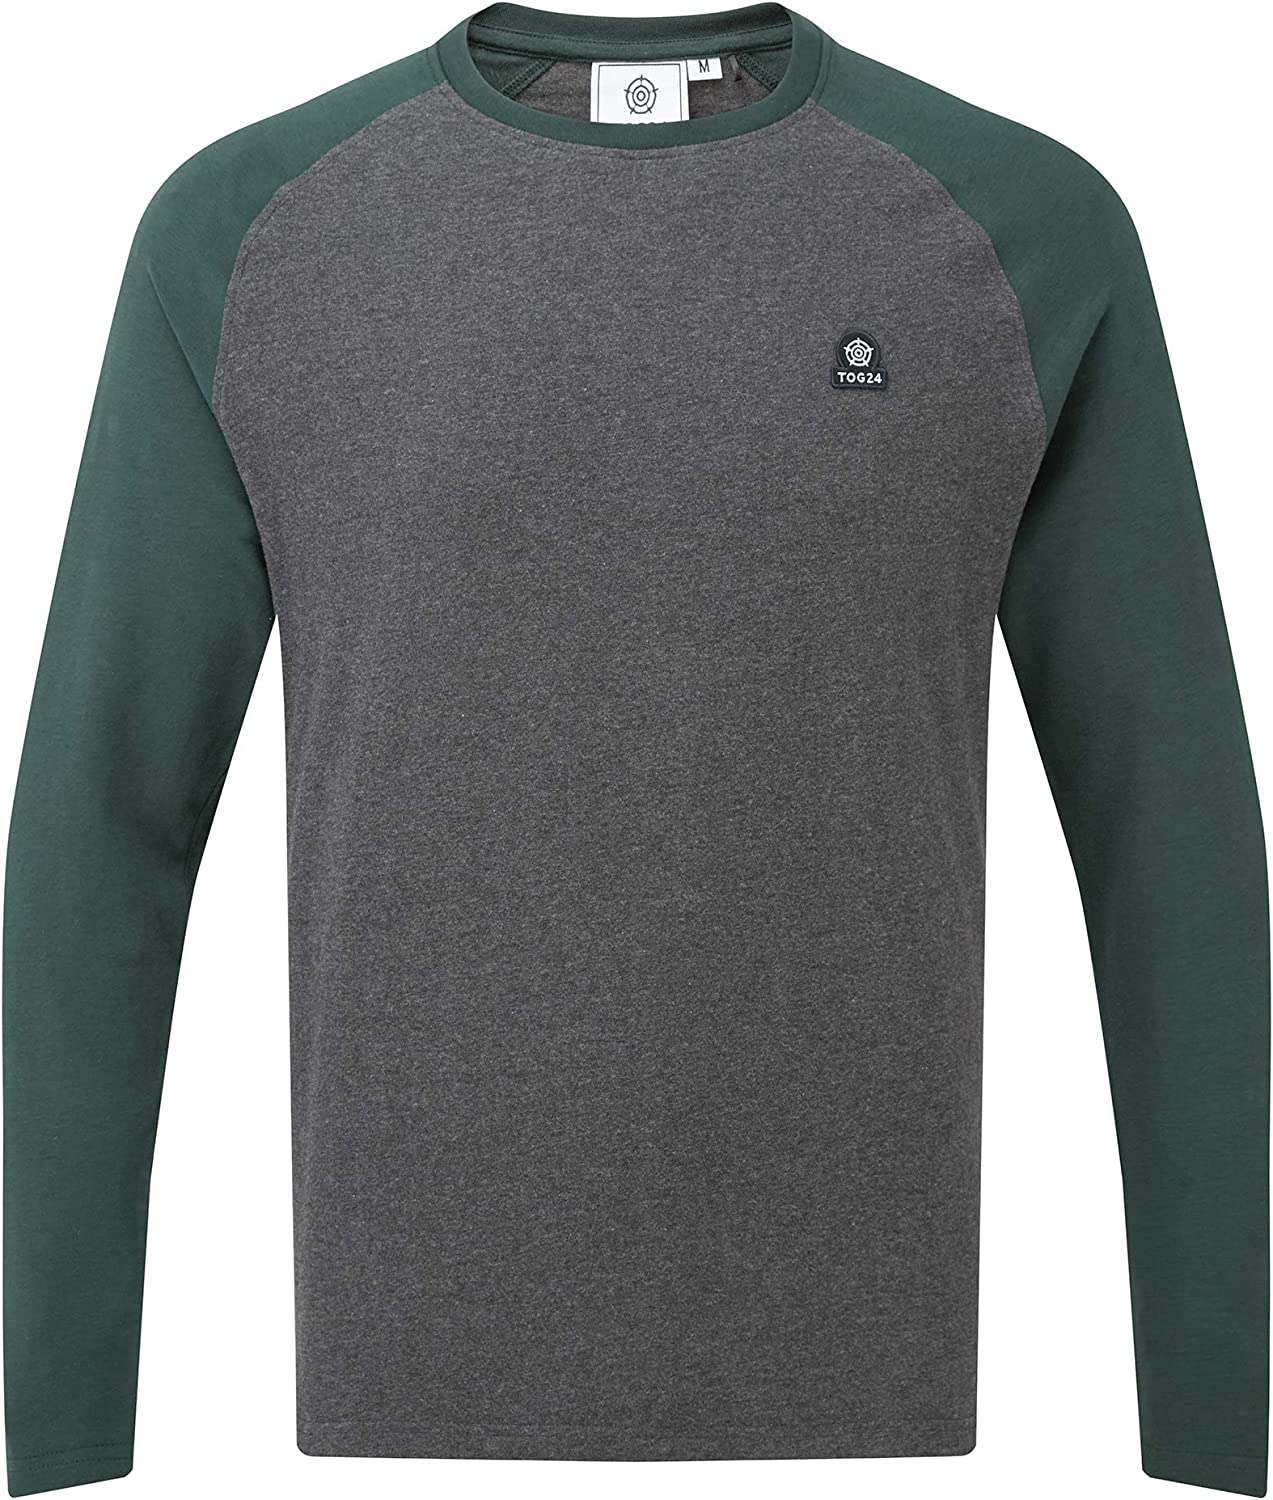 Slim Streamlined Regular Fit Textured Body with Contrast Colour Sleeves TOG 24 Haxby Mens Long Sleeve T-Shirt Perfect for Everyday Wear Leisure Casual Work Holiday Super Soft Crew Cut Jersey Tee